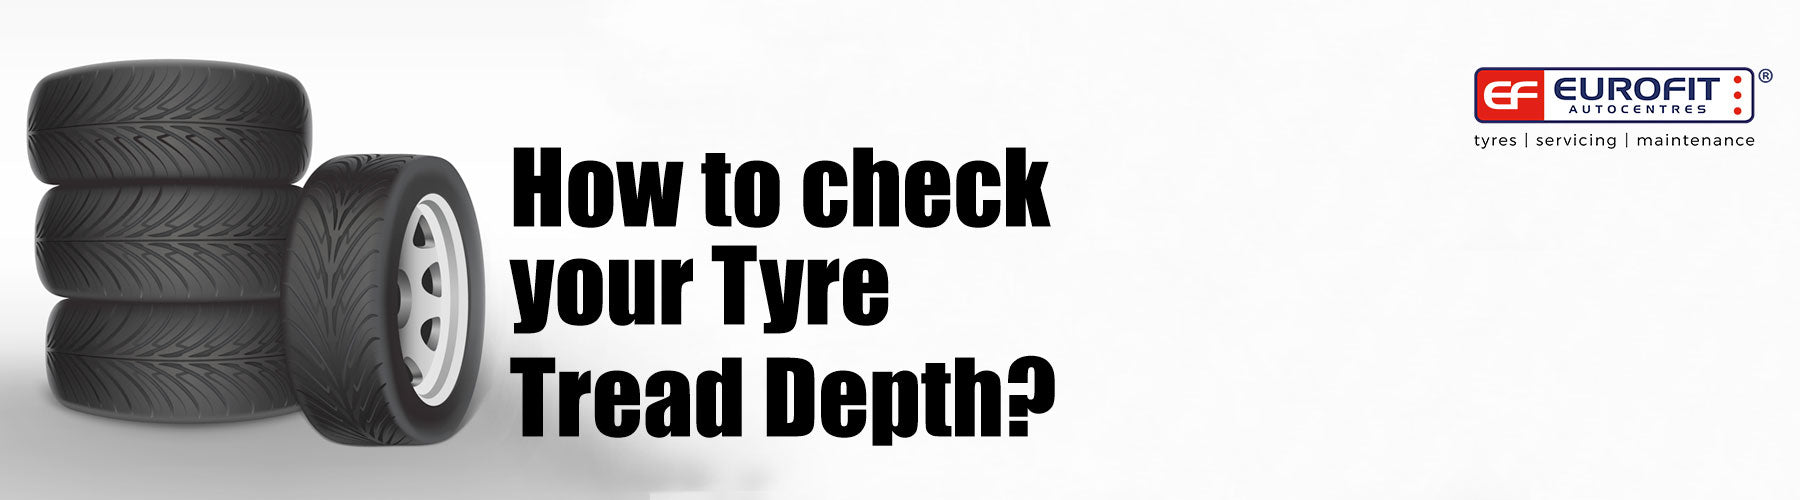 How to check your Tyre Tread Depth?